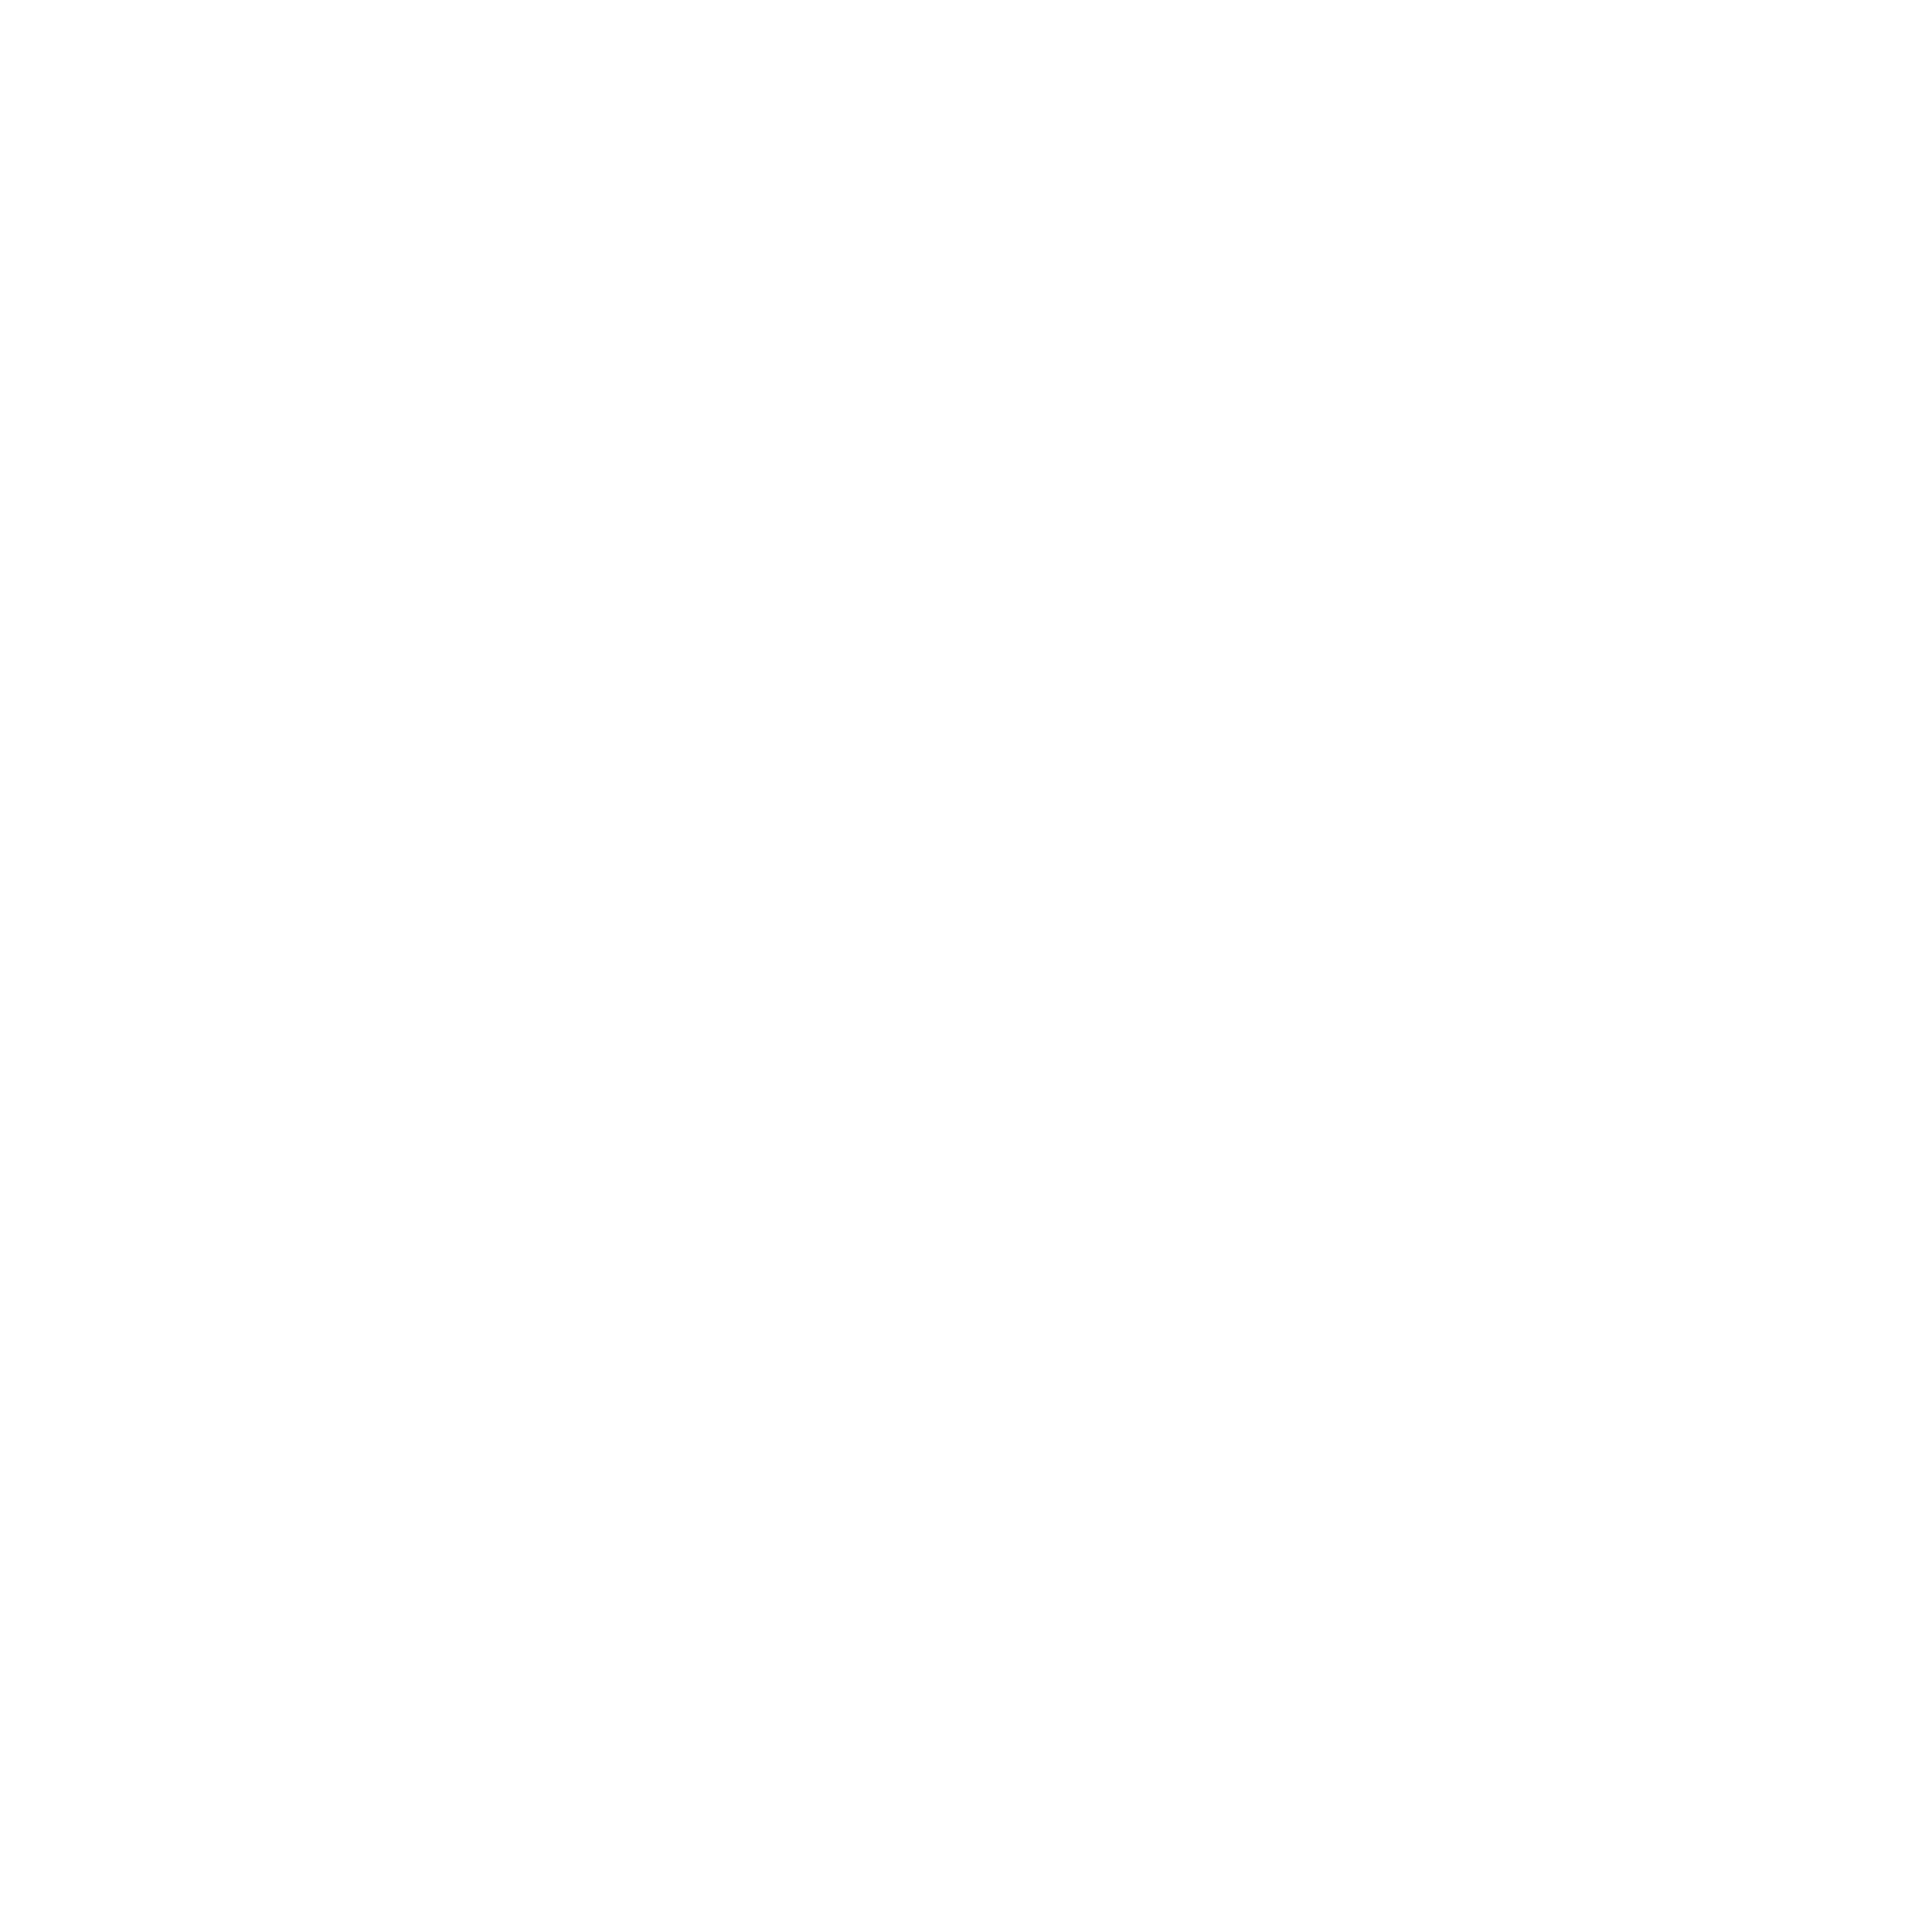 Inspiration needed for Impact Technology Systems logo